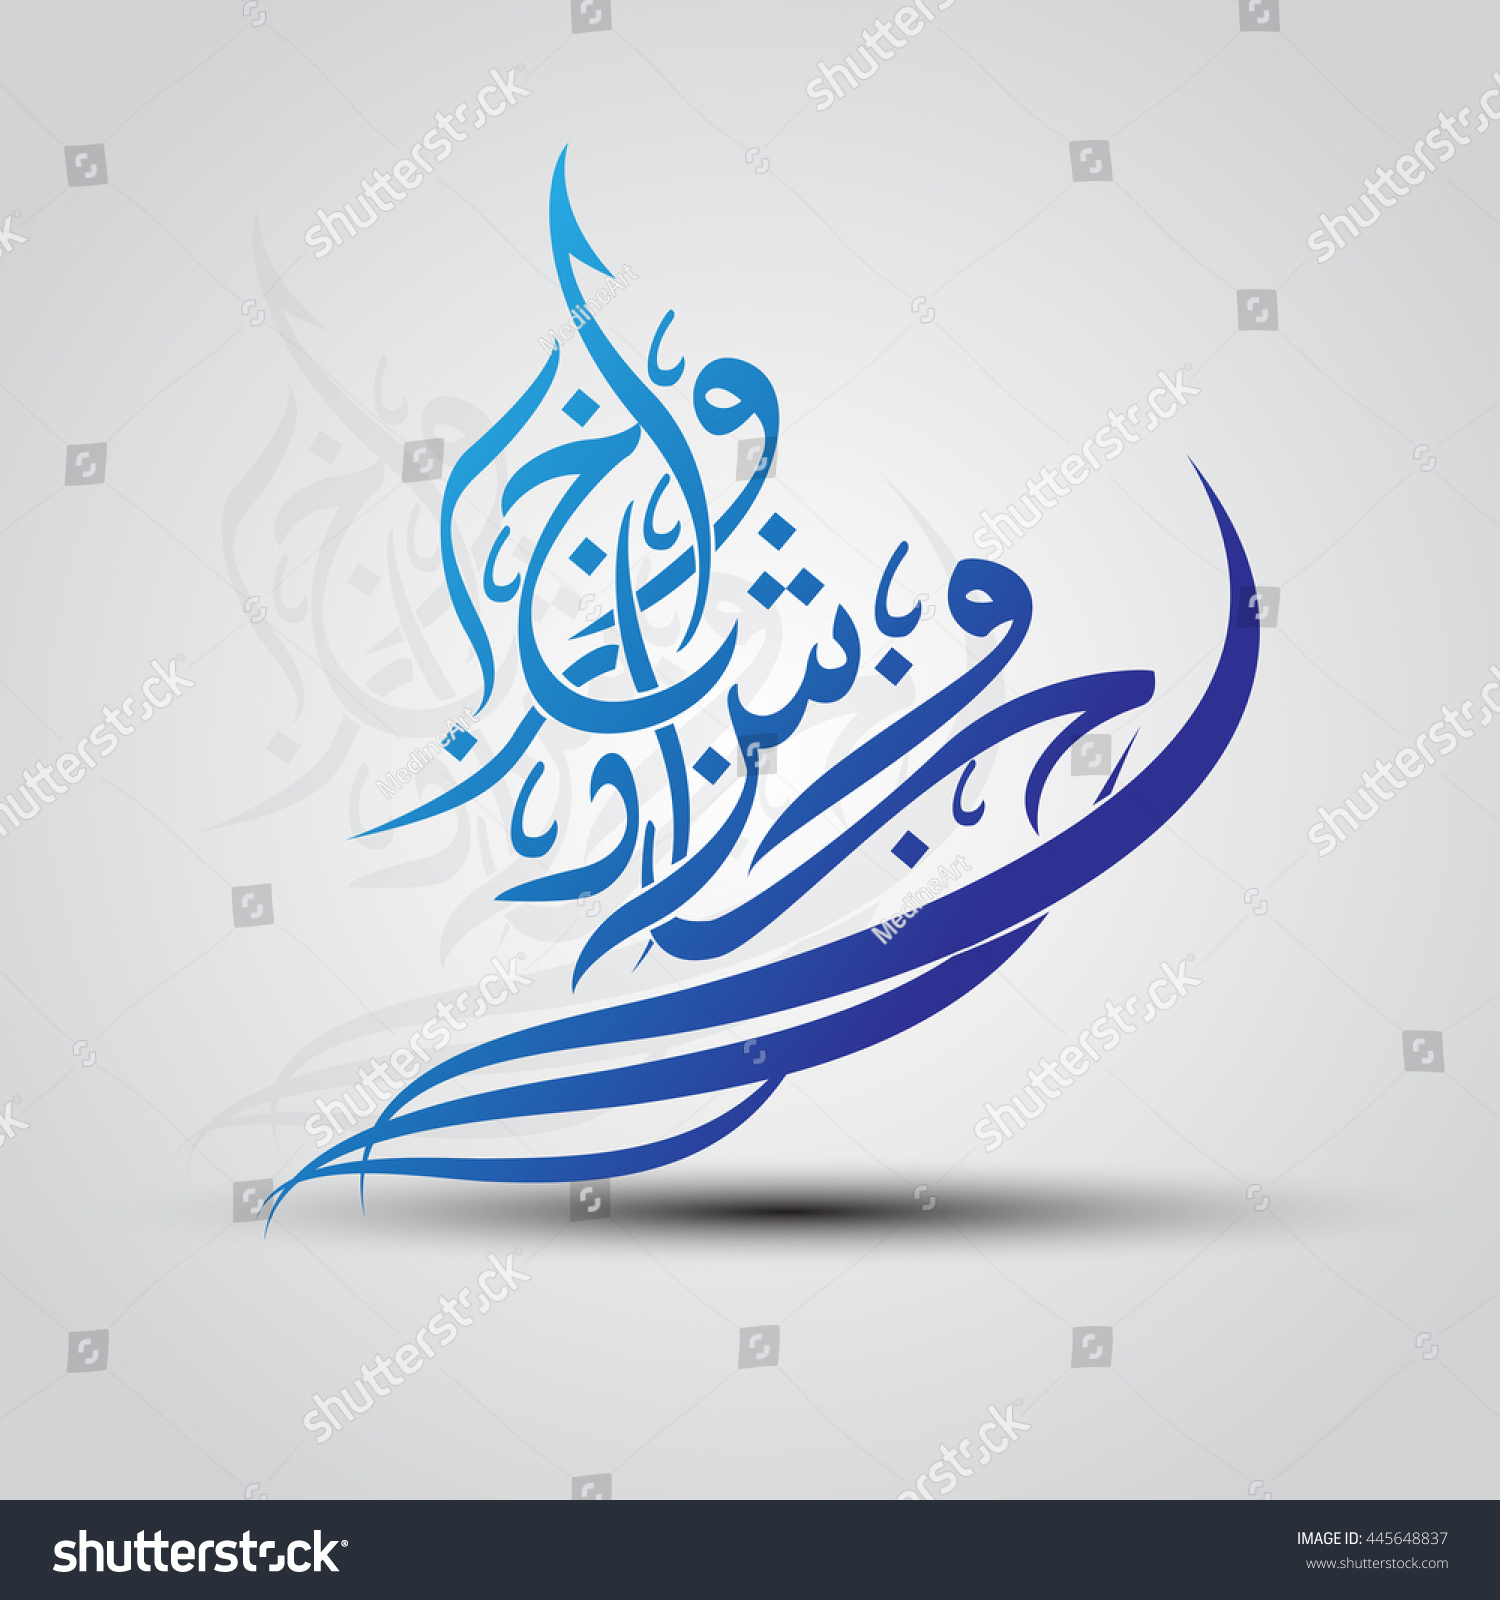 Beautiful Arabic Calligraphy Letters No Meaning Stock